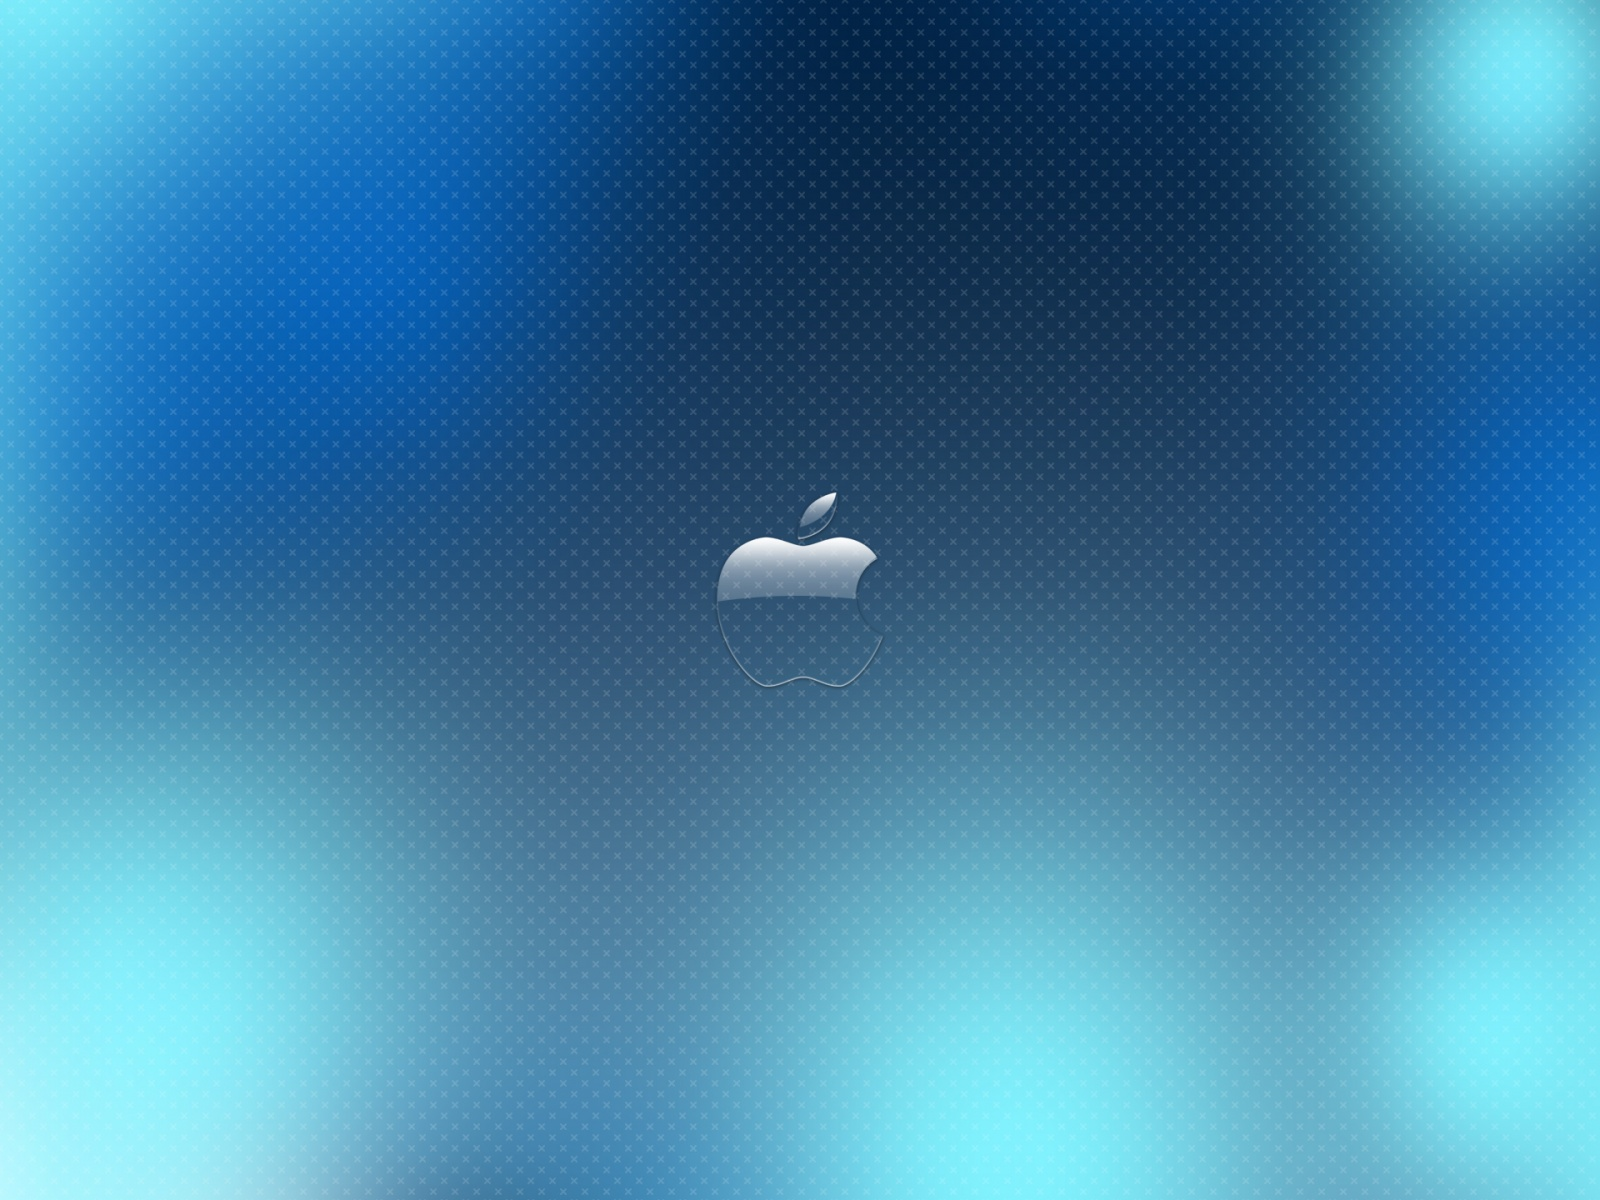 blue glass apple wallpapers in jpg format for free download